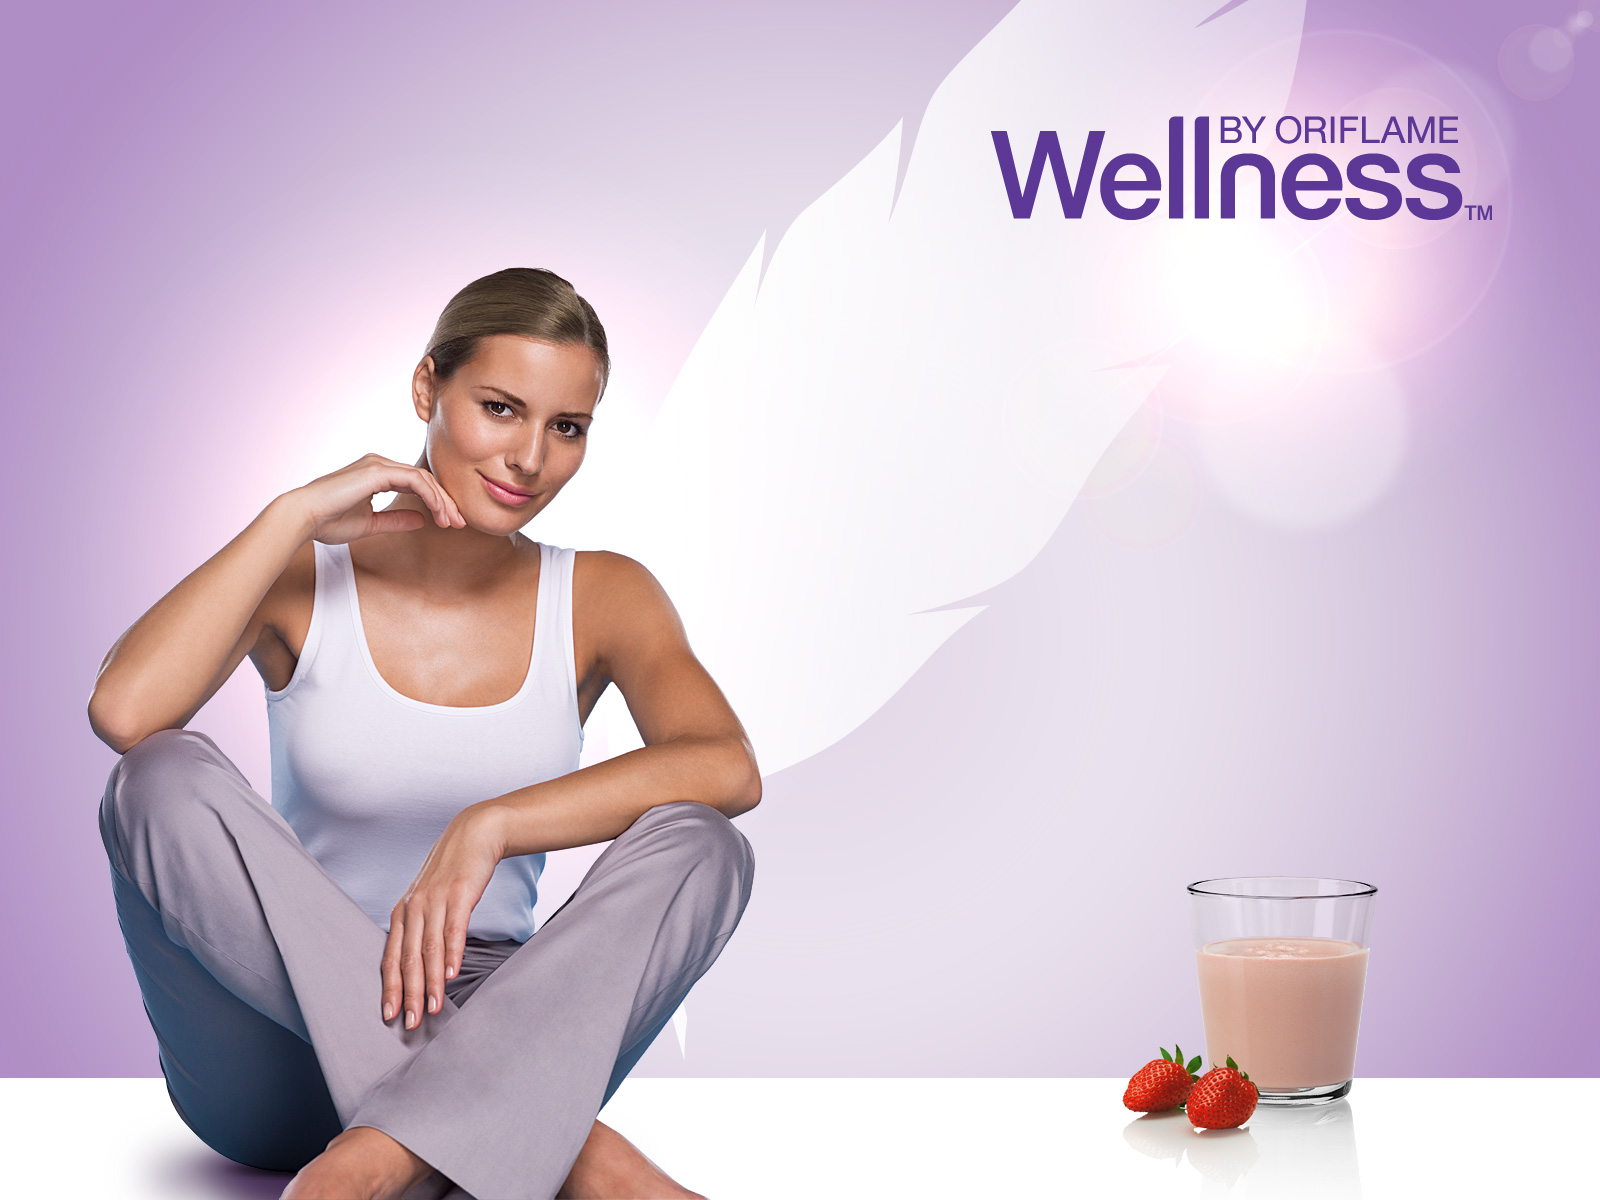 Wellness wallpaper group picture image by tag keywordpictures com